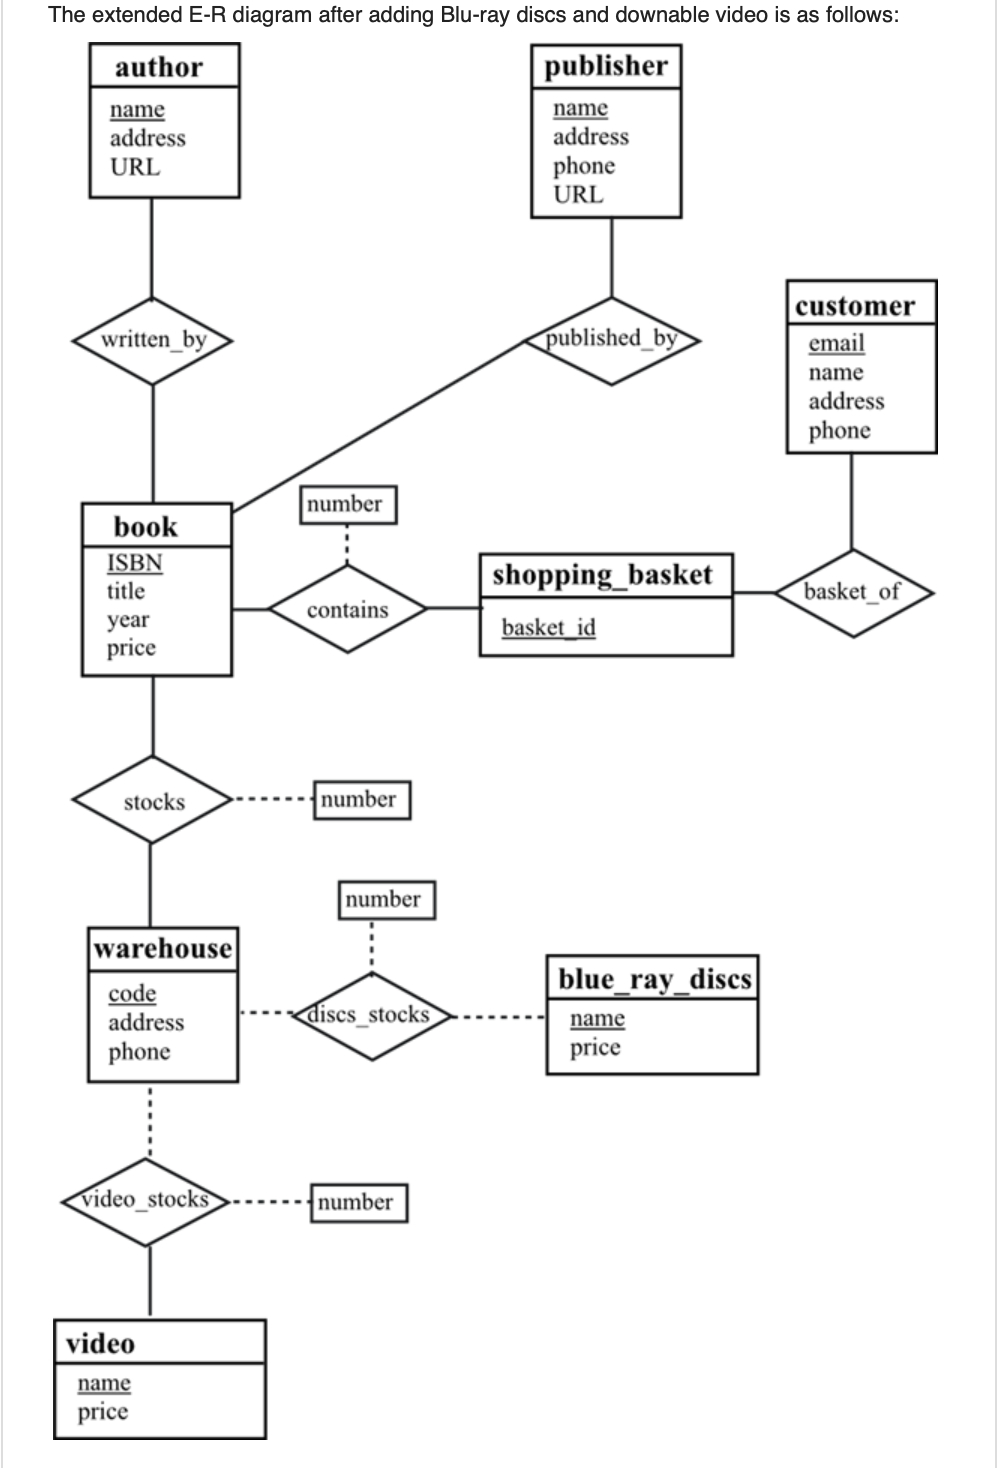 Construct The Relational Schema Diagram For The Bo intended for Er Diagram Book Publisher